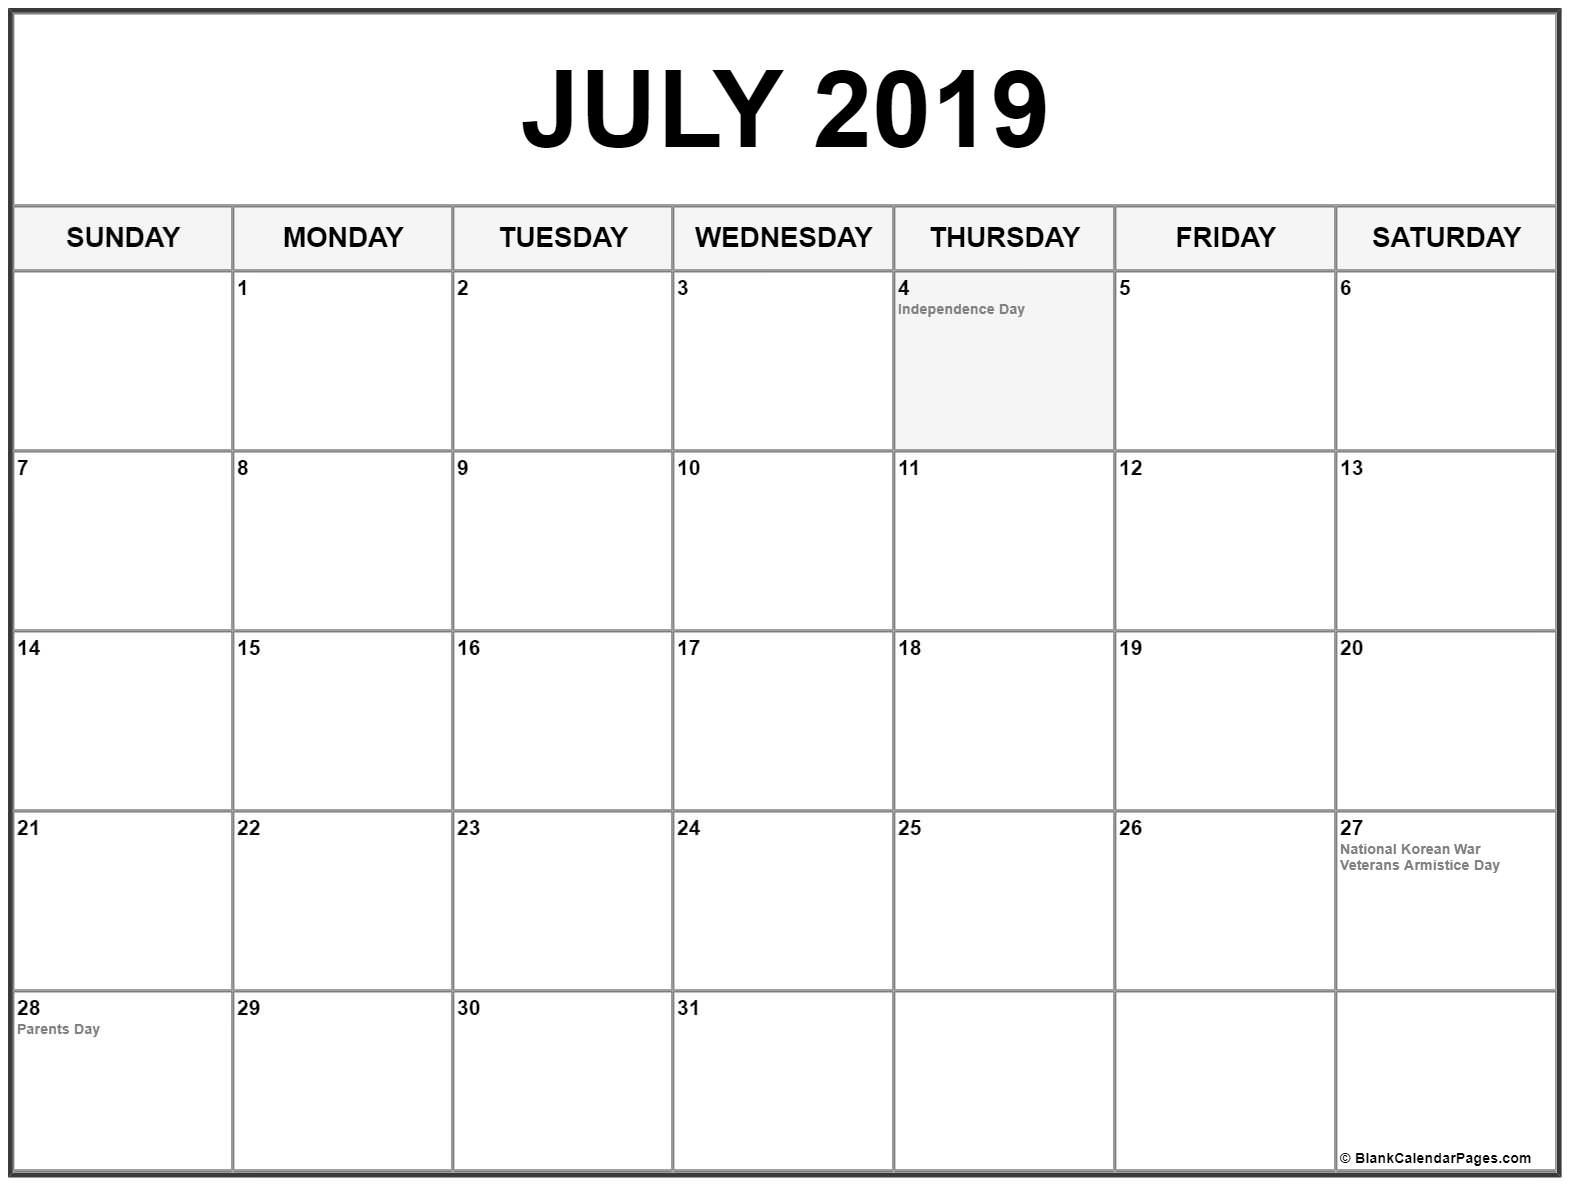 July 2019 Calendar With Holidays #july #july2019 #julycalendar2019 in July 2019 - July 2020 Calendar Printable Free